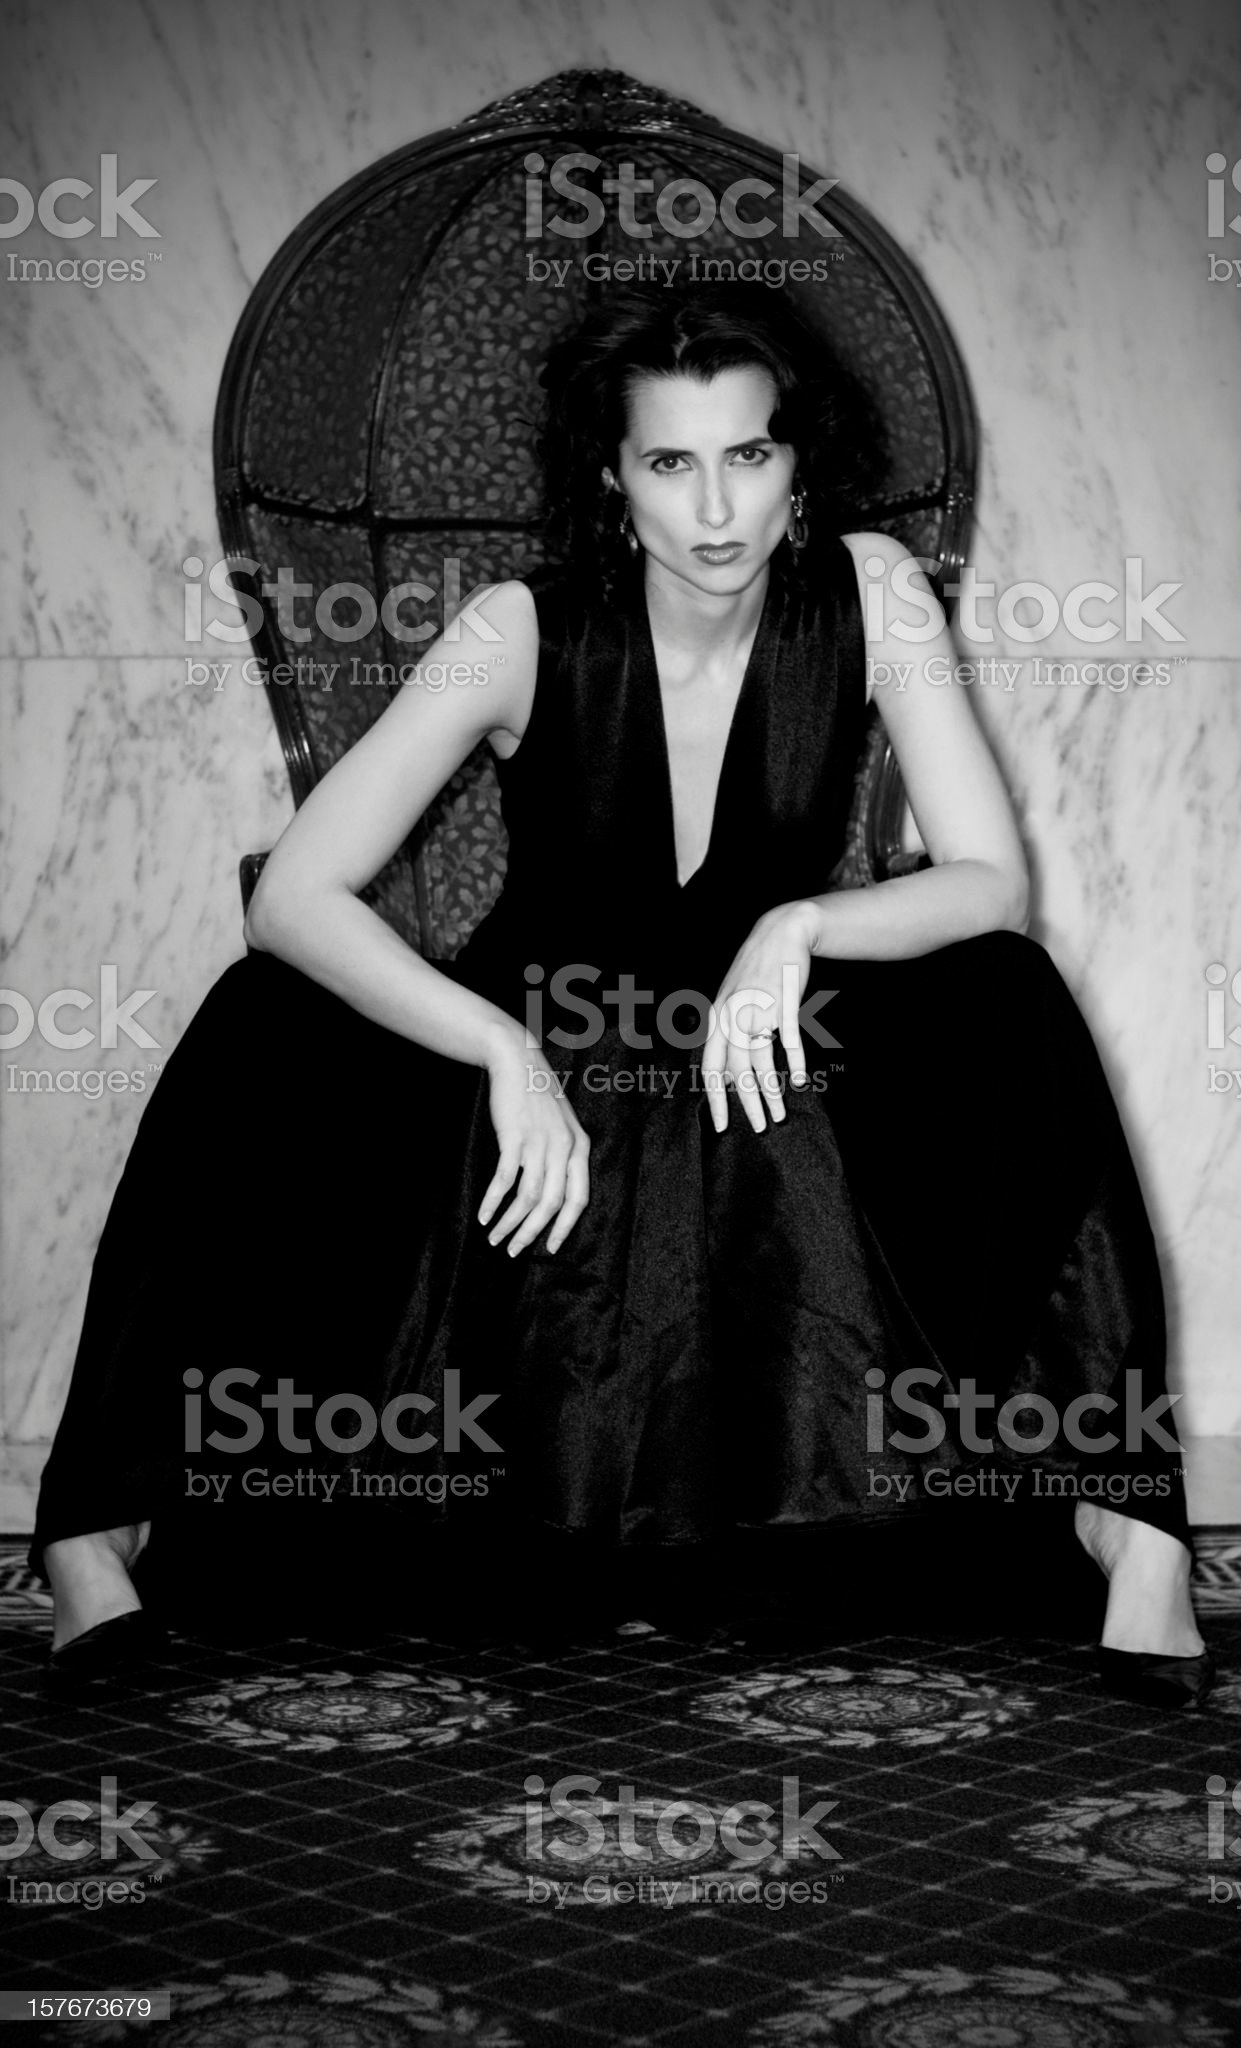 Desaturated Brunette, Classic Beauty, Attitude royalty-free stock photo